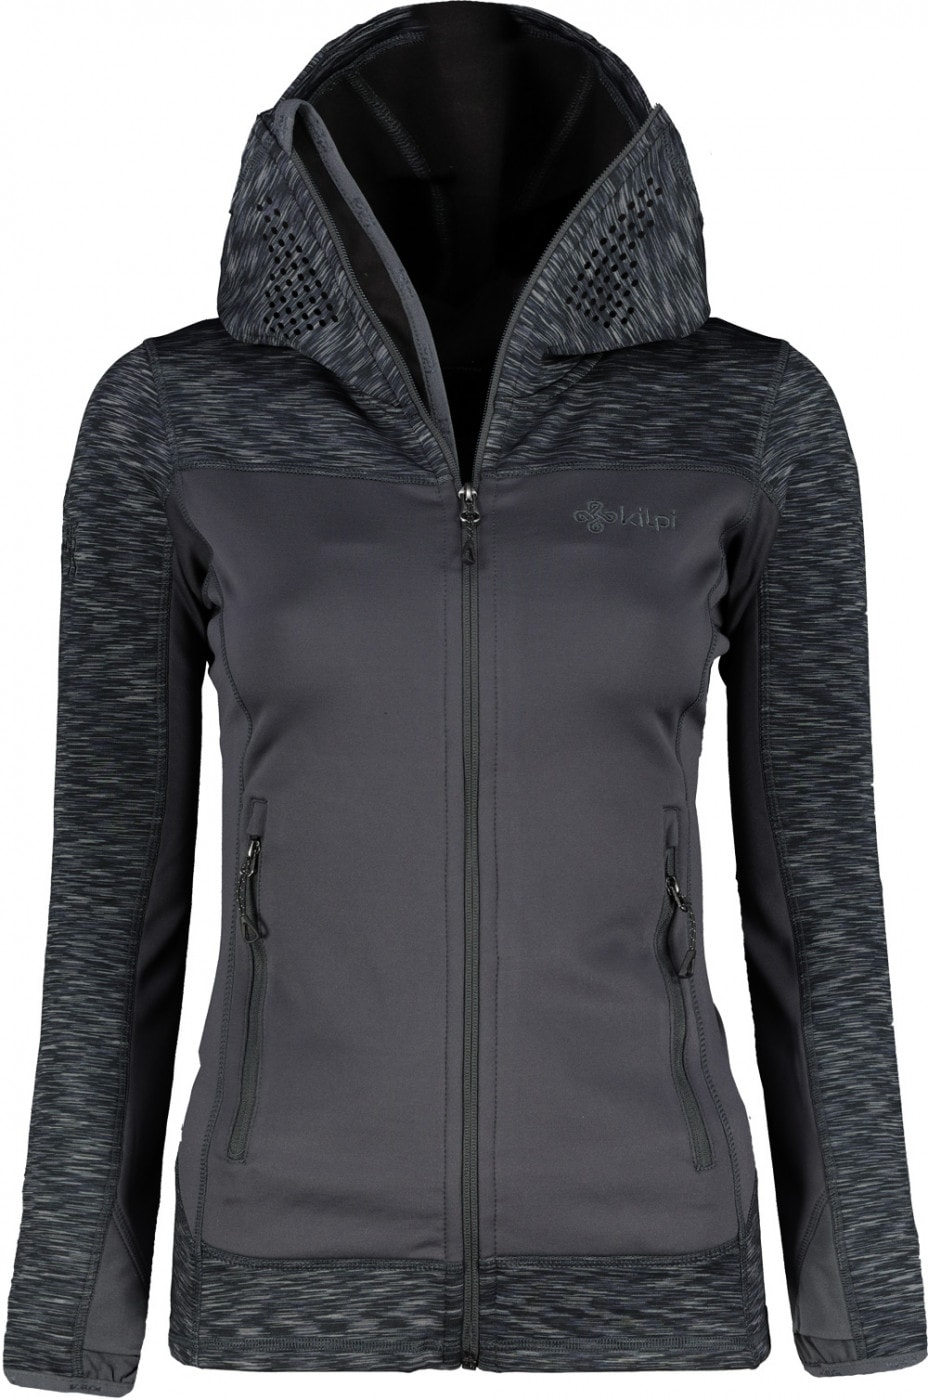 Women's fleece hoodie Kilpi ASSASIN W